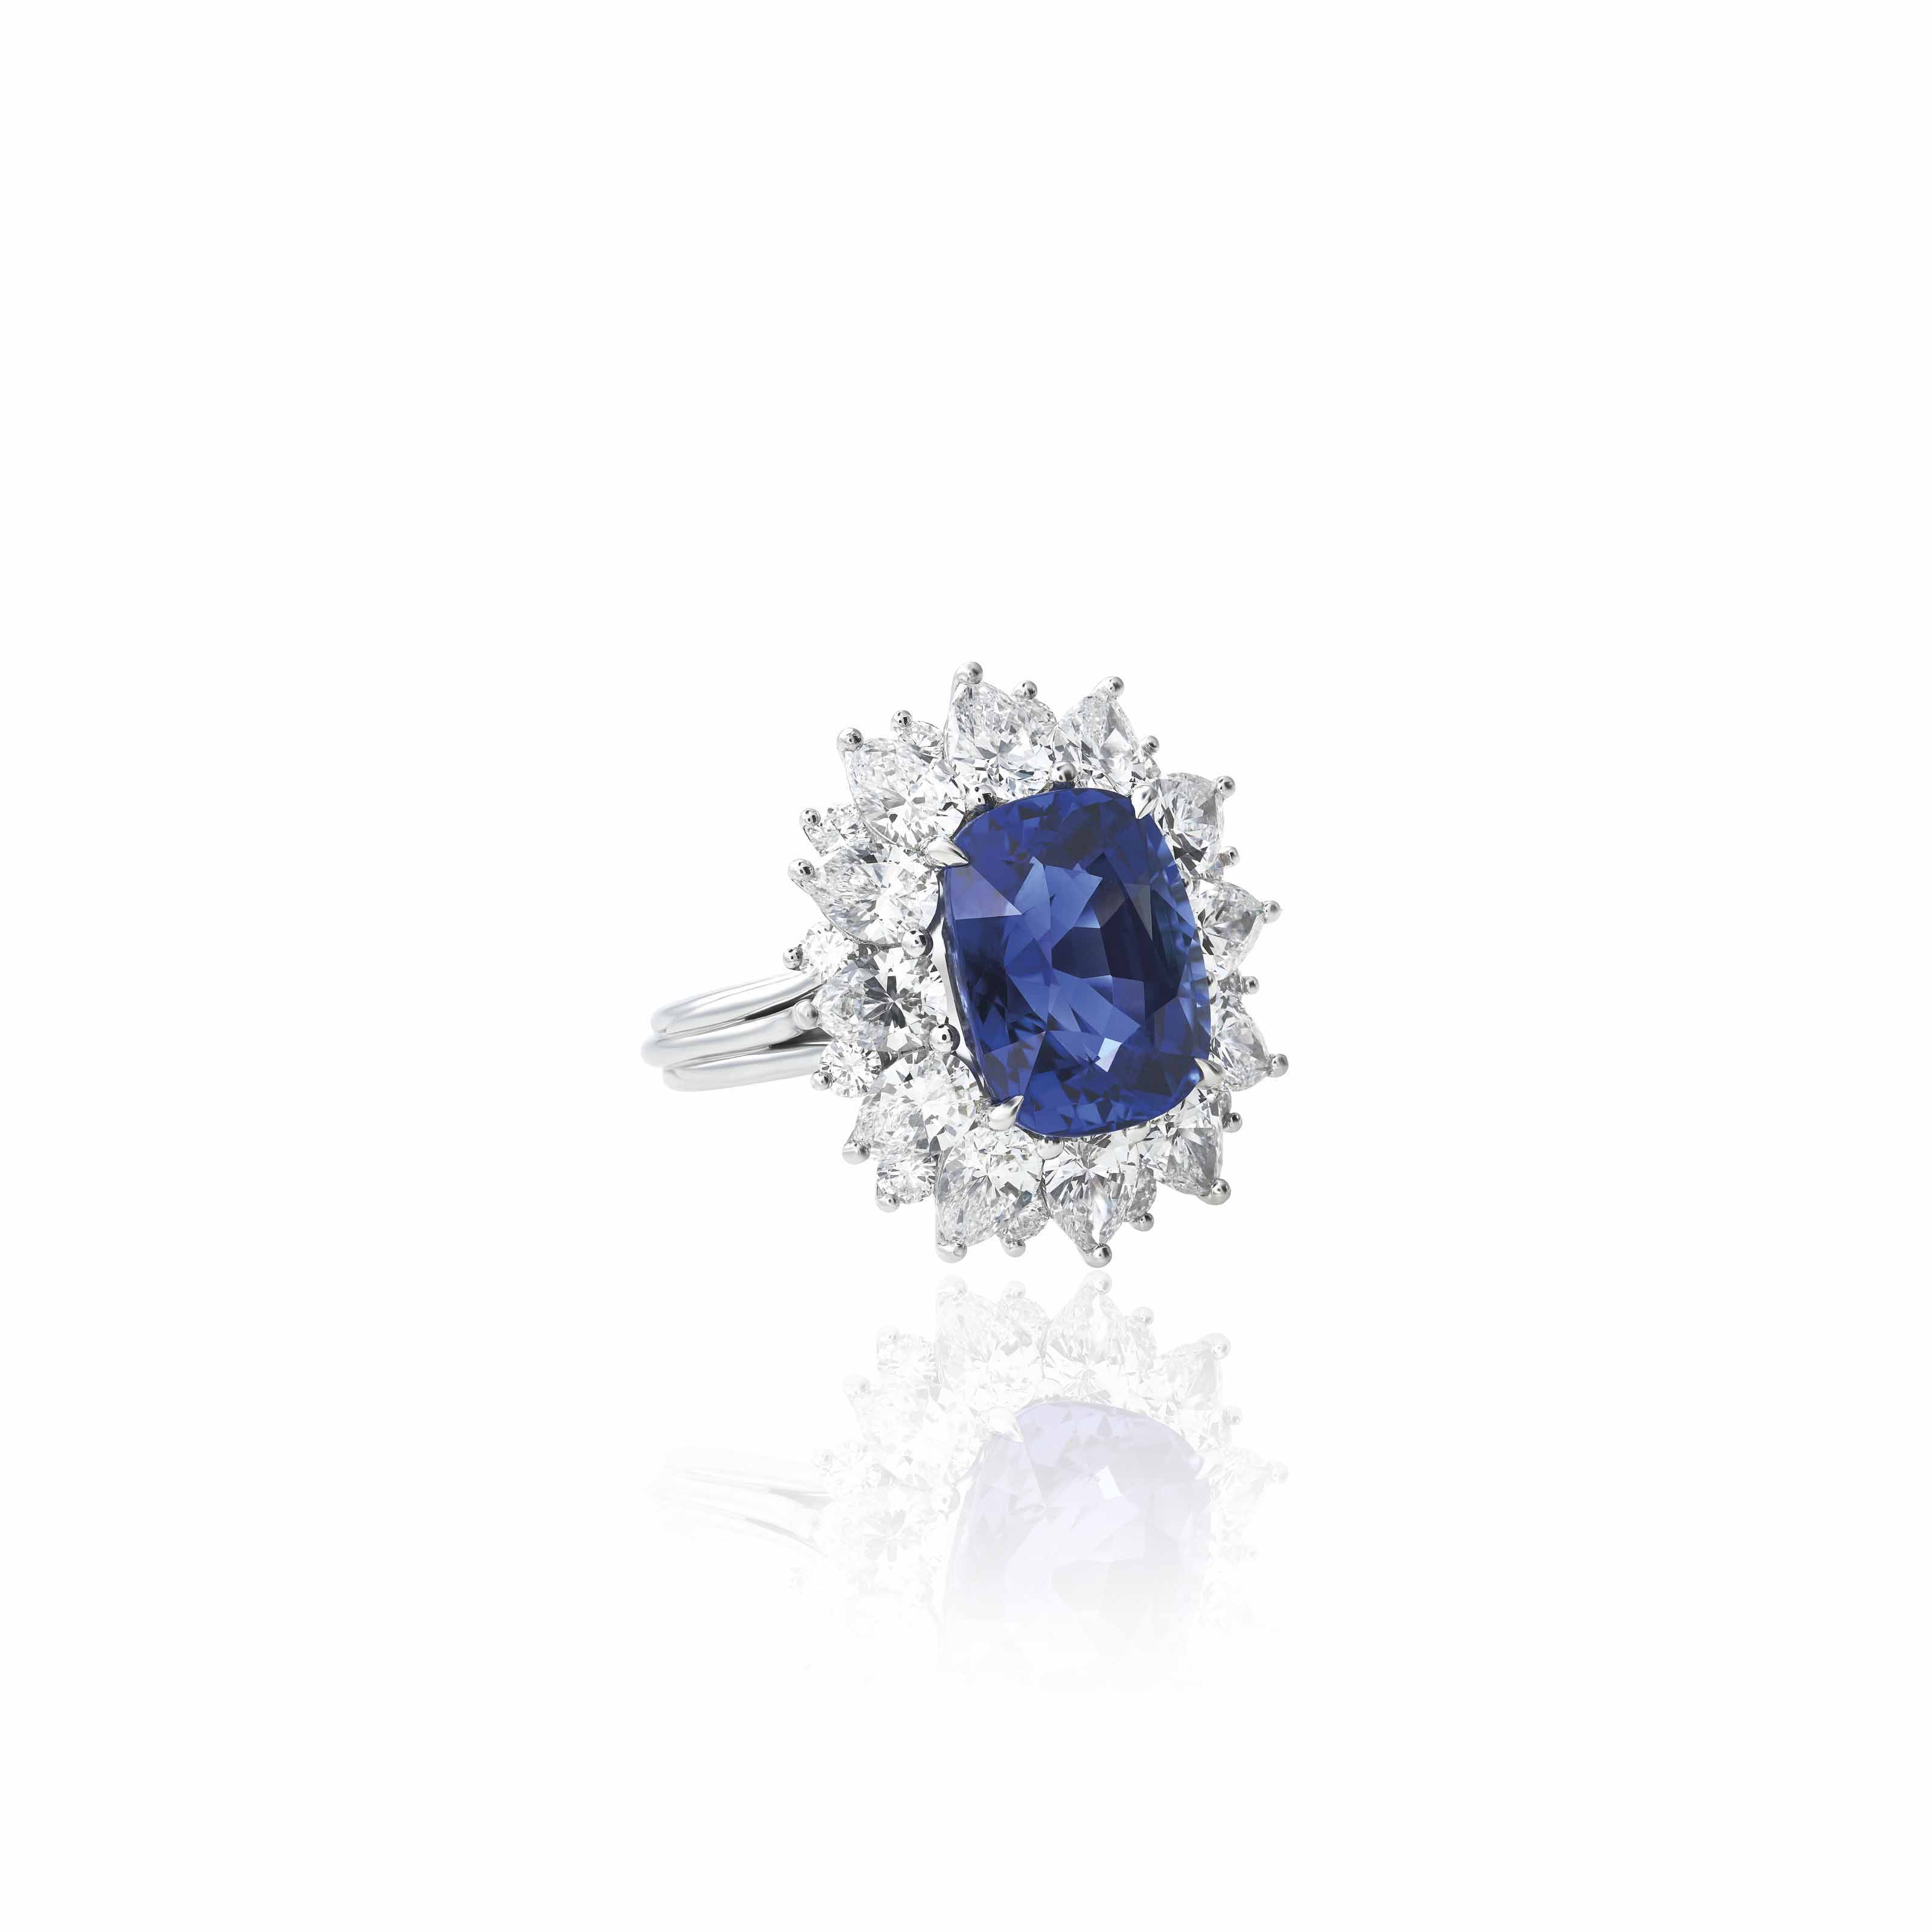 an ring auktionshaus ct diamond cartier catalogues paris decorative lempertz csm gold by lot en and arts sapphire